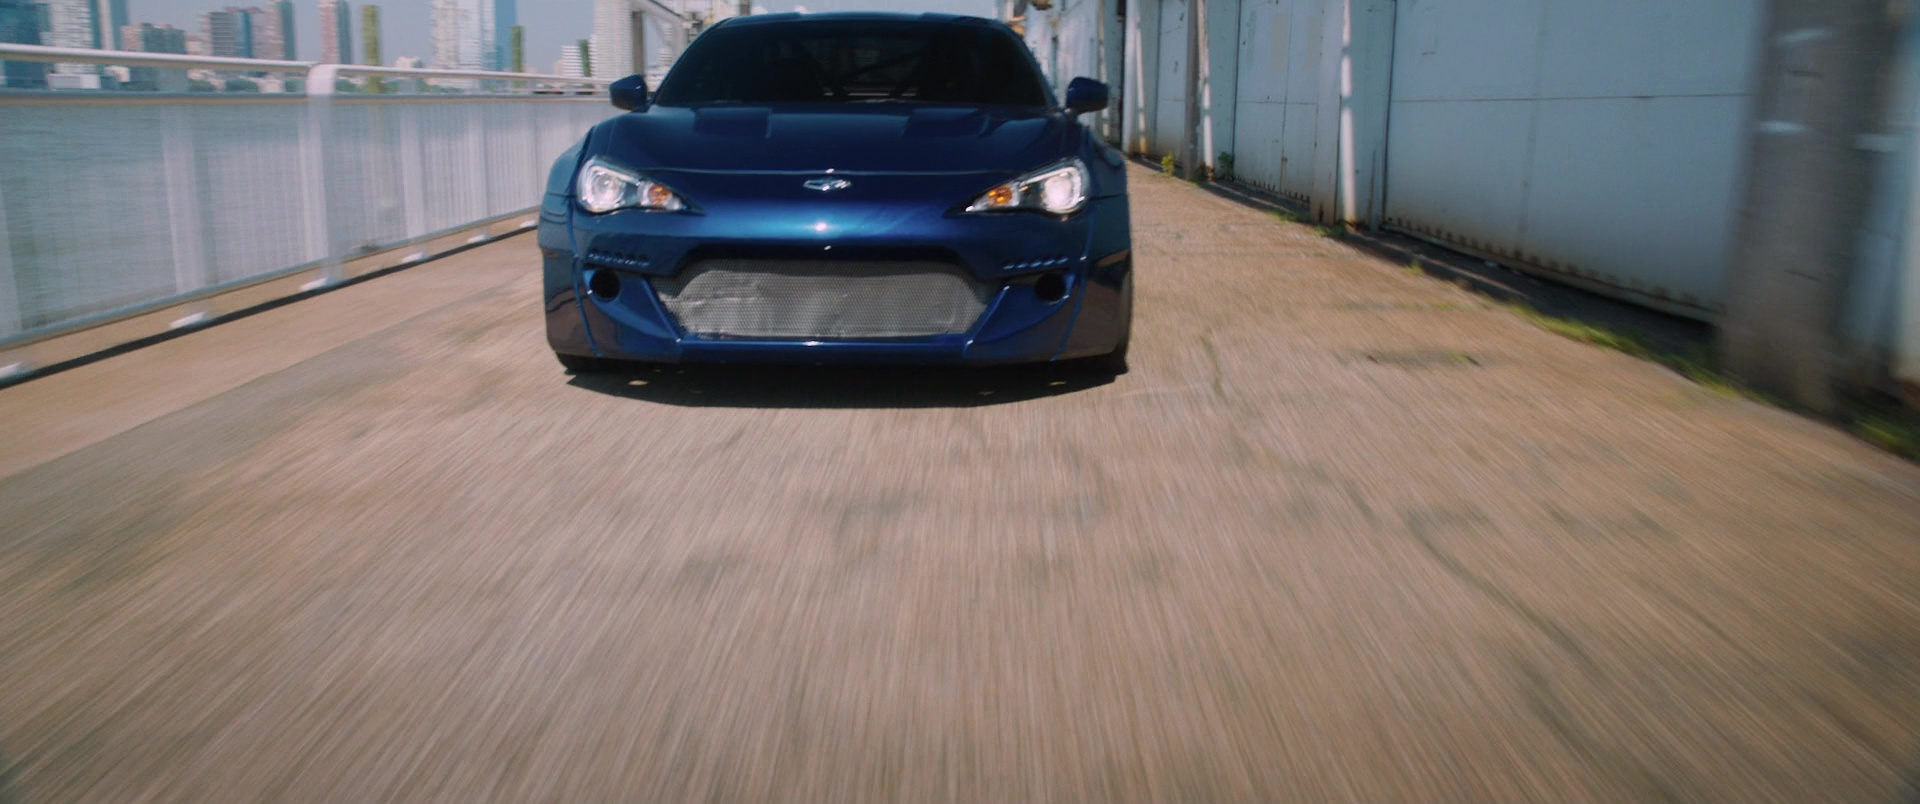 subaru brz car in the fate of the furious  2017  movie